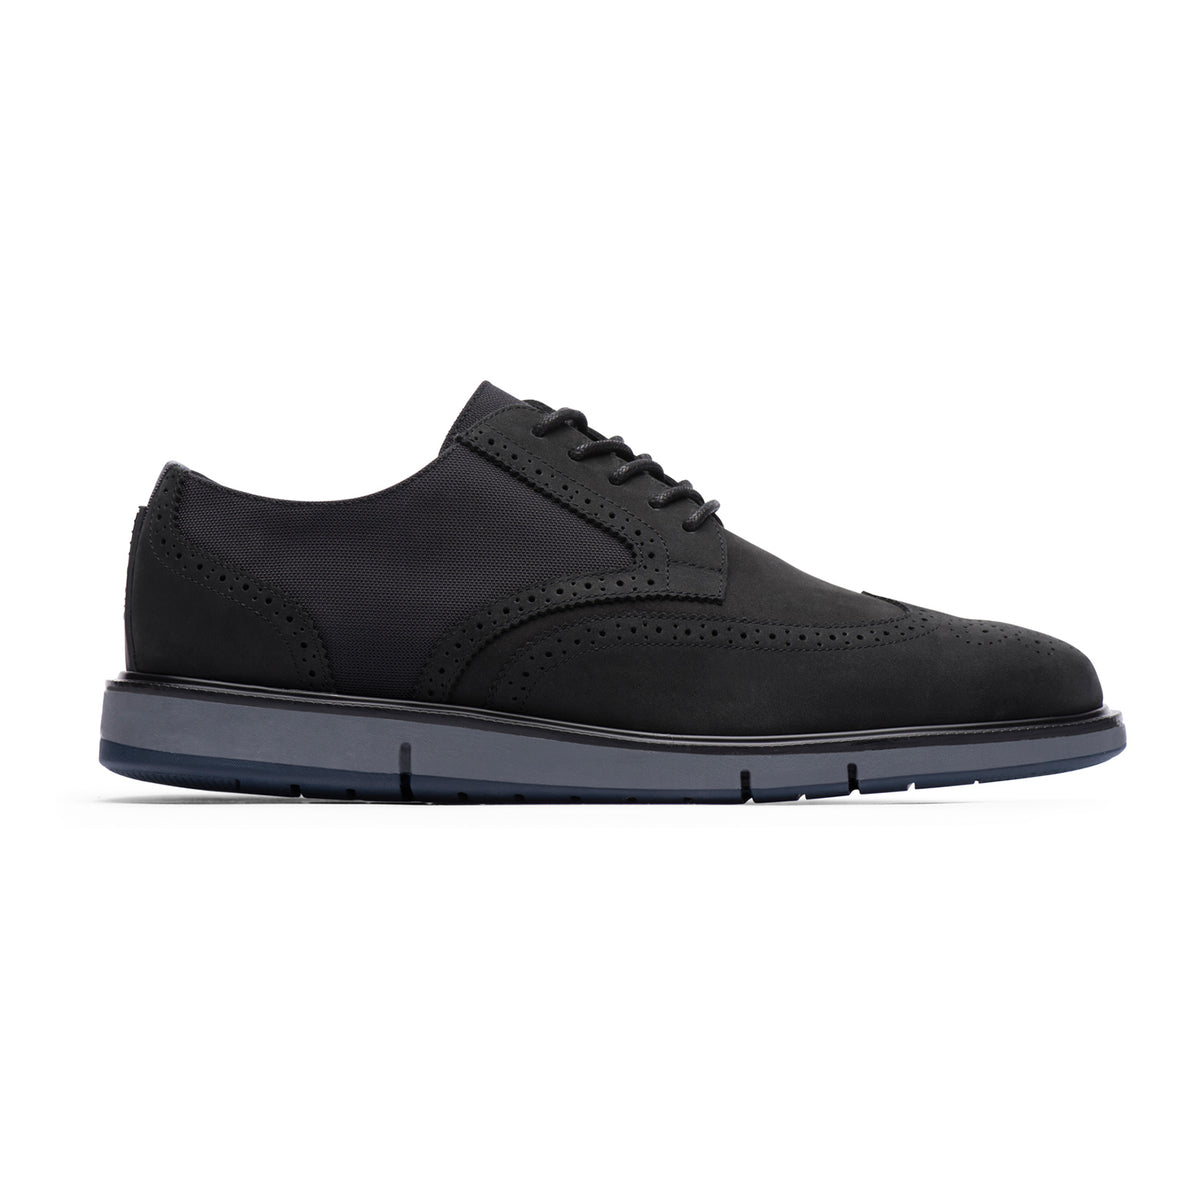 Motion Wing Tip Oxford - background::white,variant::Black/Gray/Navy